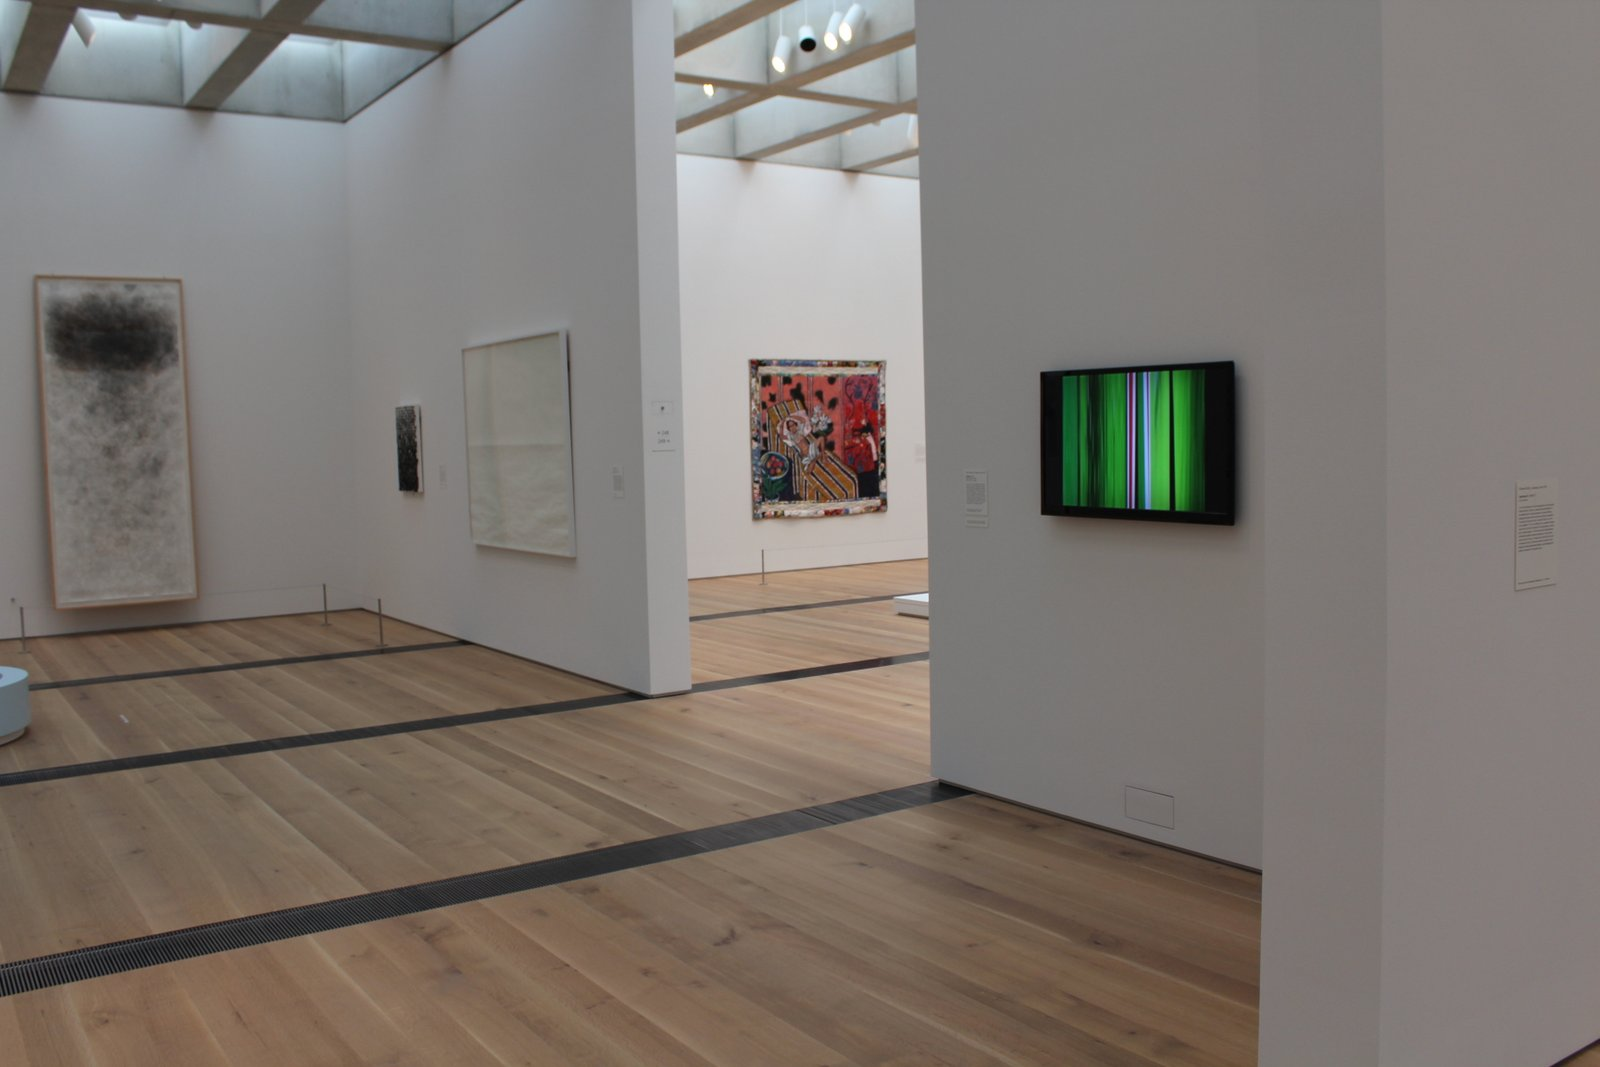 St Louis Art Museum – Quarter sawn White Oak flooring